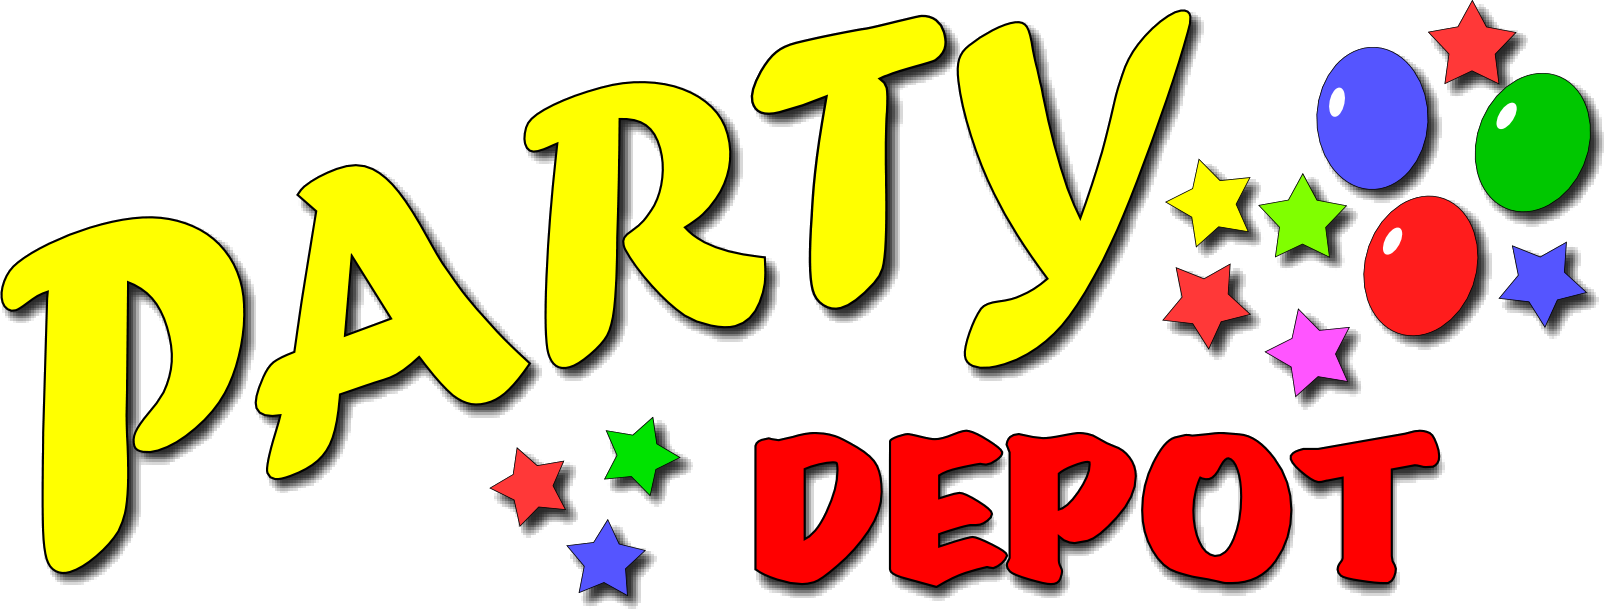 Decoration clipart party item. Birthday supplies costumes decorations